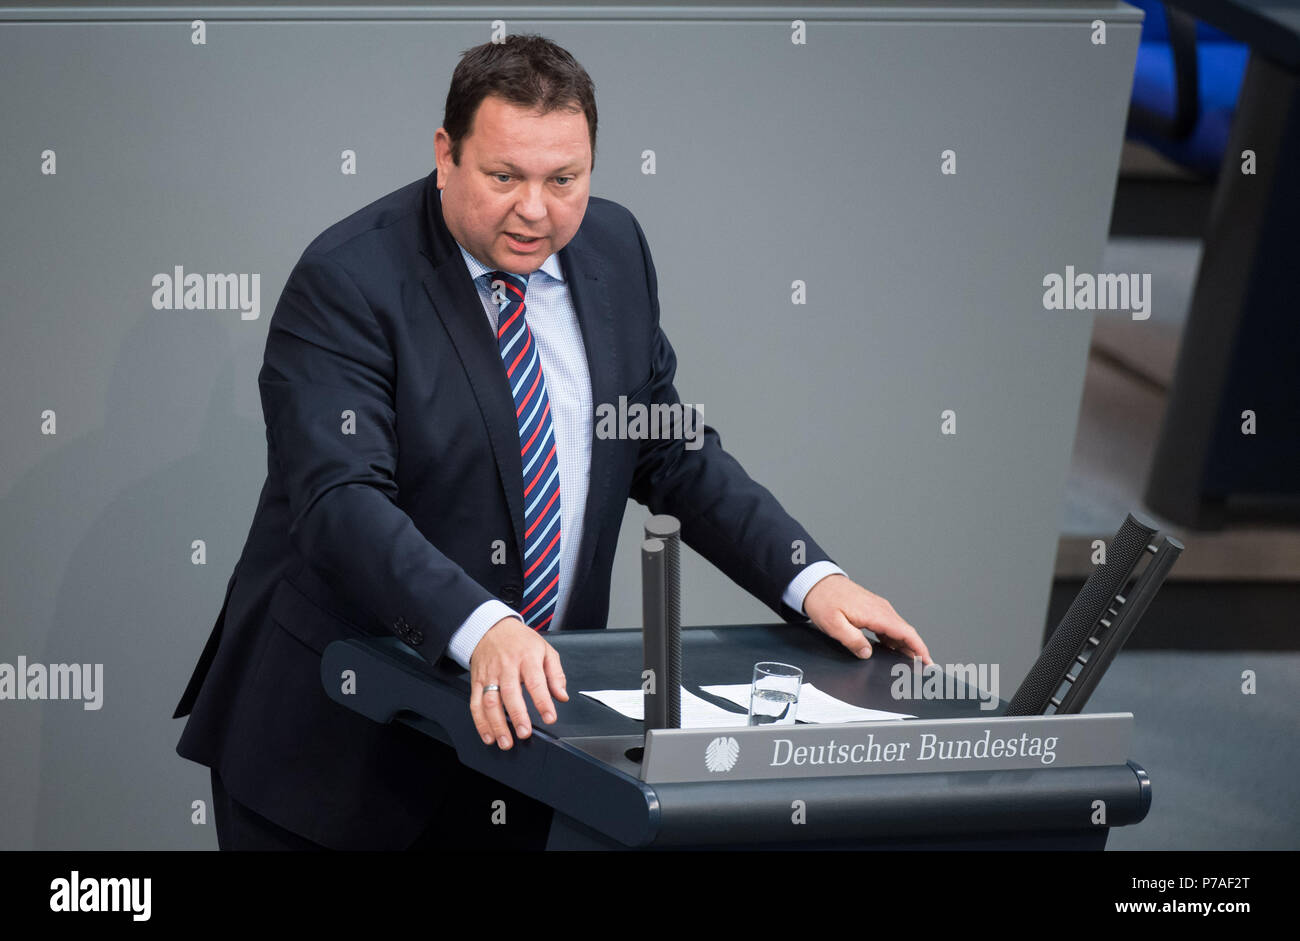 Germany, Berlin. 5th July, 2018. Martin Gerster (Social Democratic Party - SPD) speaks during the plenary session of the German parliament. The highlight of the 46th session of the 19th legislative period is the adoption of the federal budget. The Parliament has deliberated on several individual budgets in its last meeting before the summer break. Credit: Bernd von Jutrczenka/dpa/Alamy Live News - Stock Image